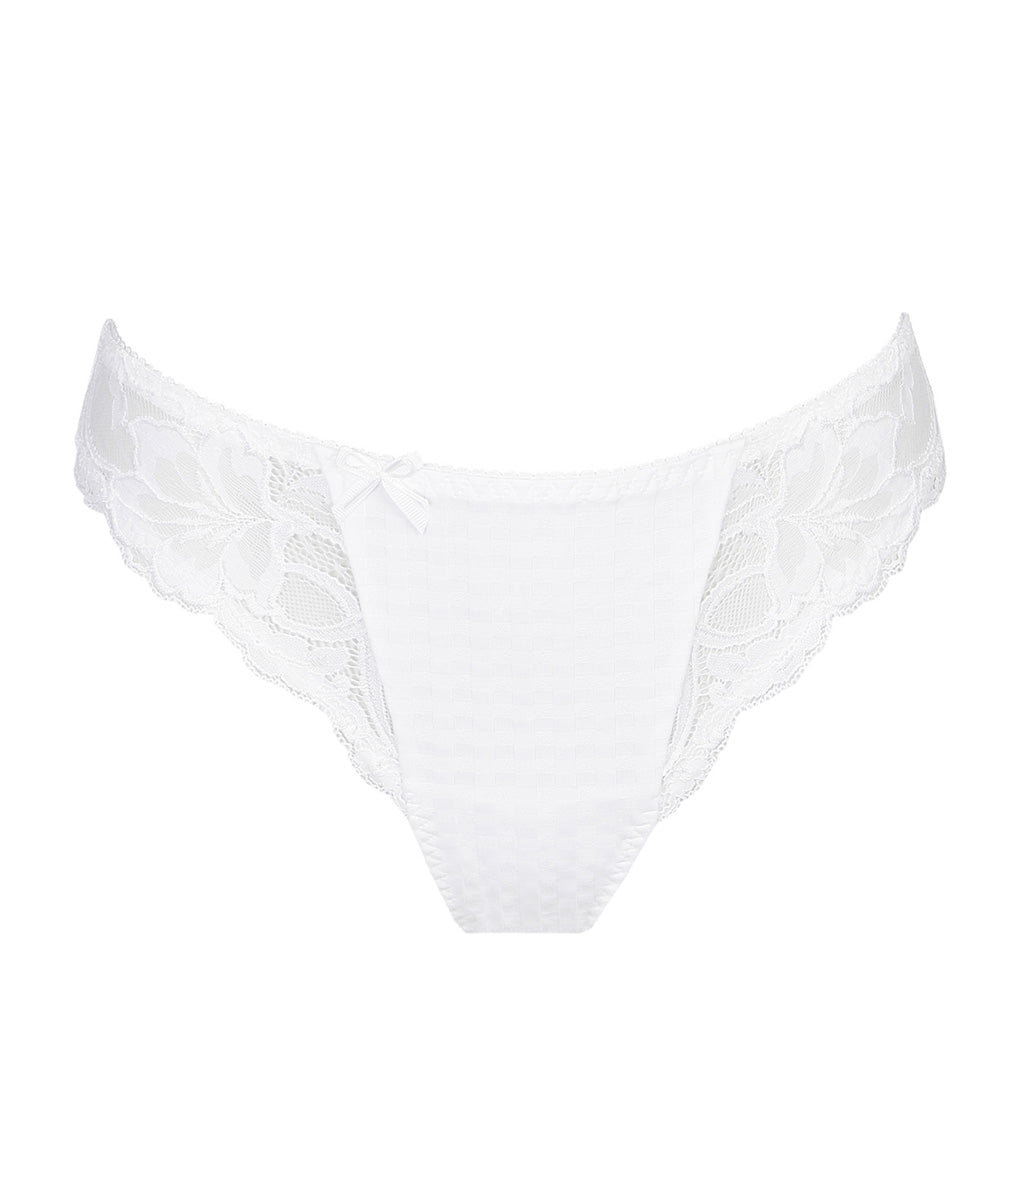 PrimaDonna 'Madison' (White) Thong - Sandra Dee - Product Shot - Front